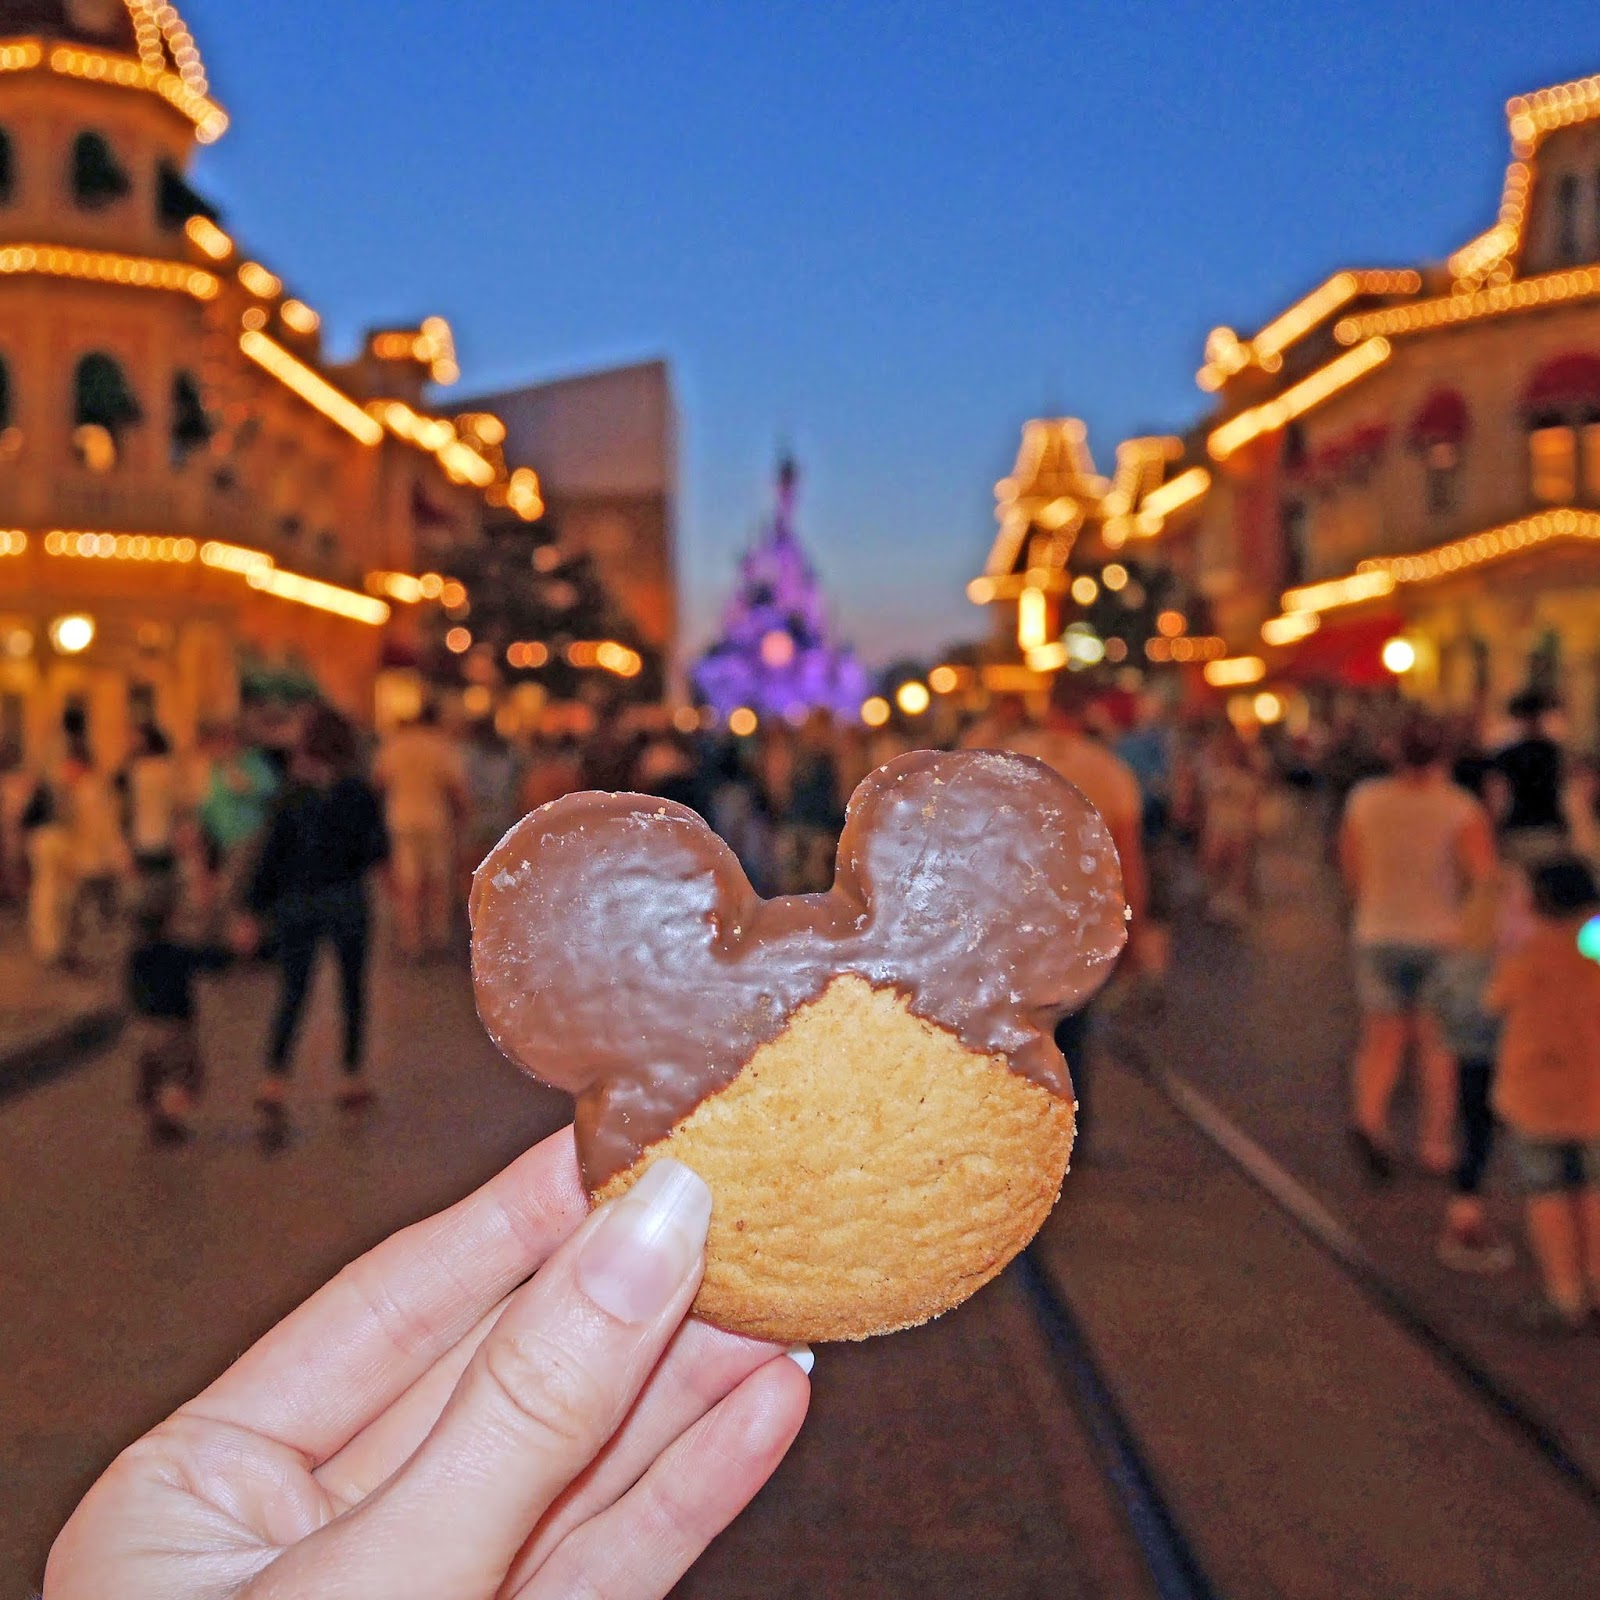 Eating a Mickey Mouse cookie on Main Street USA during the evening